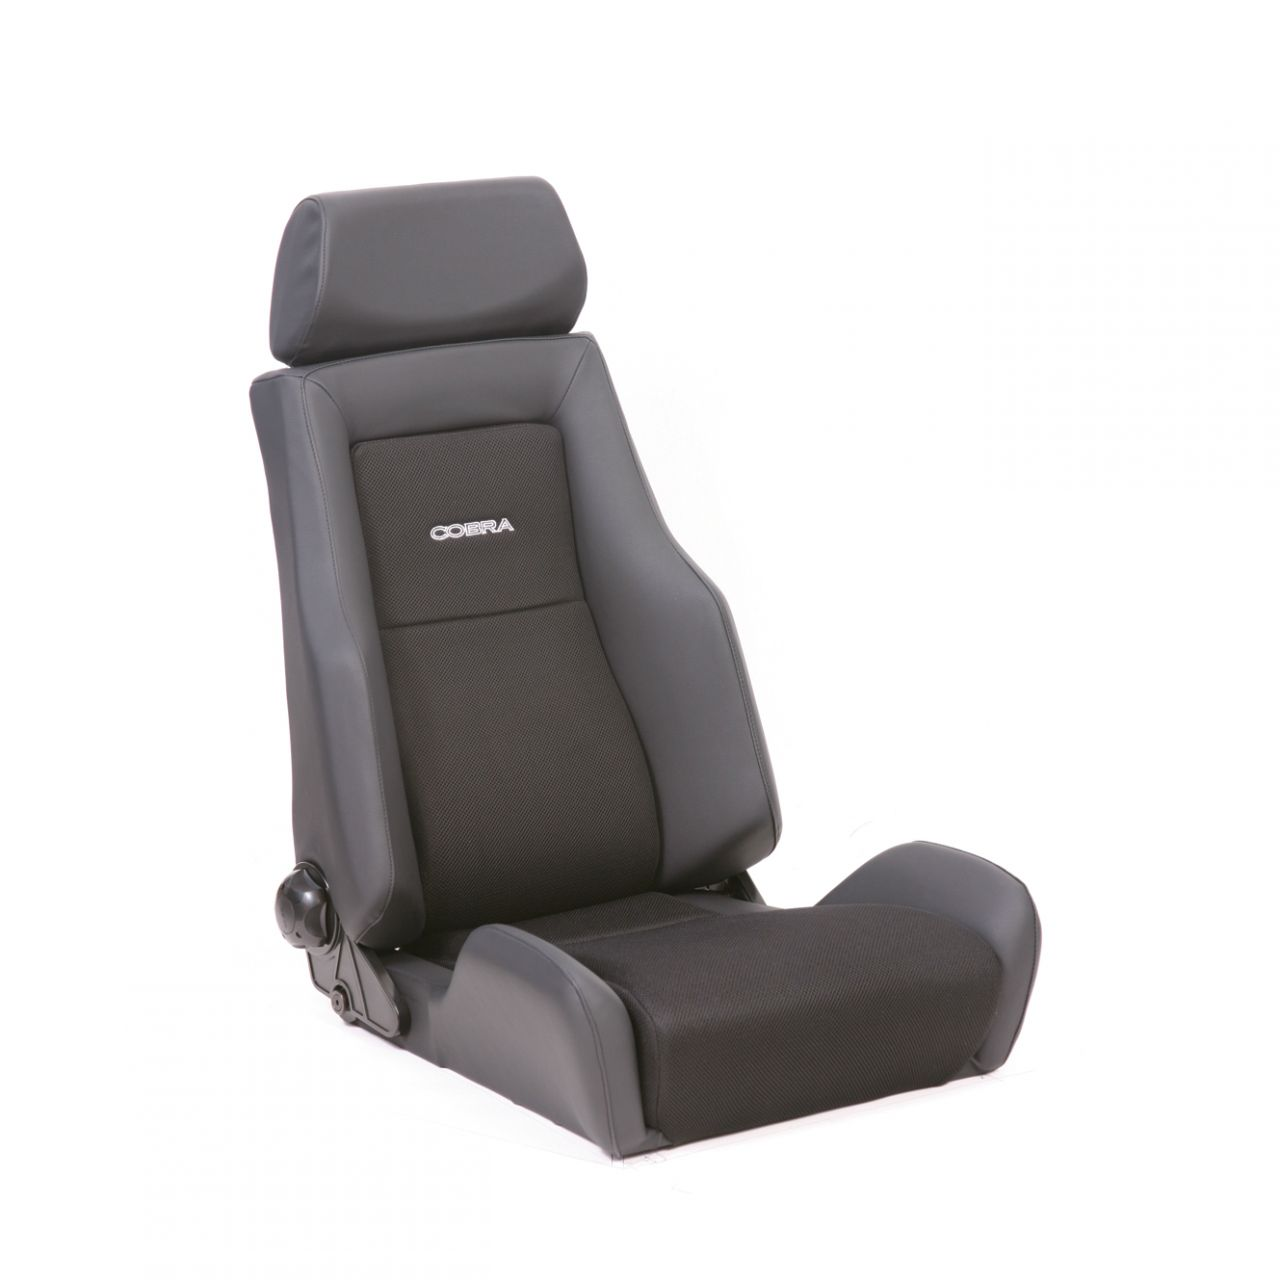 Recaro Used Car Seat